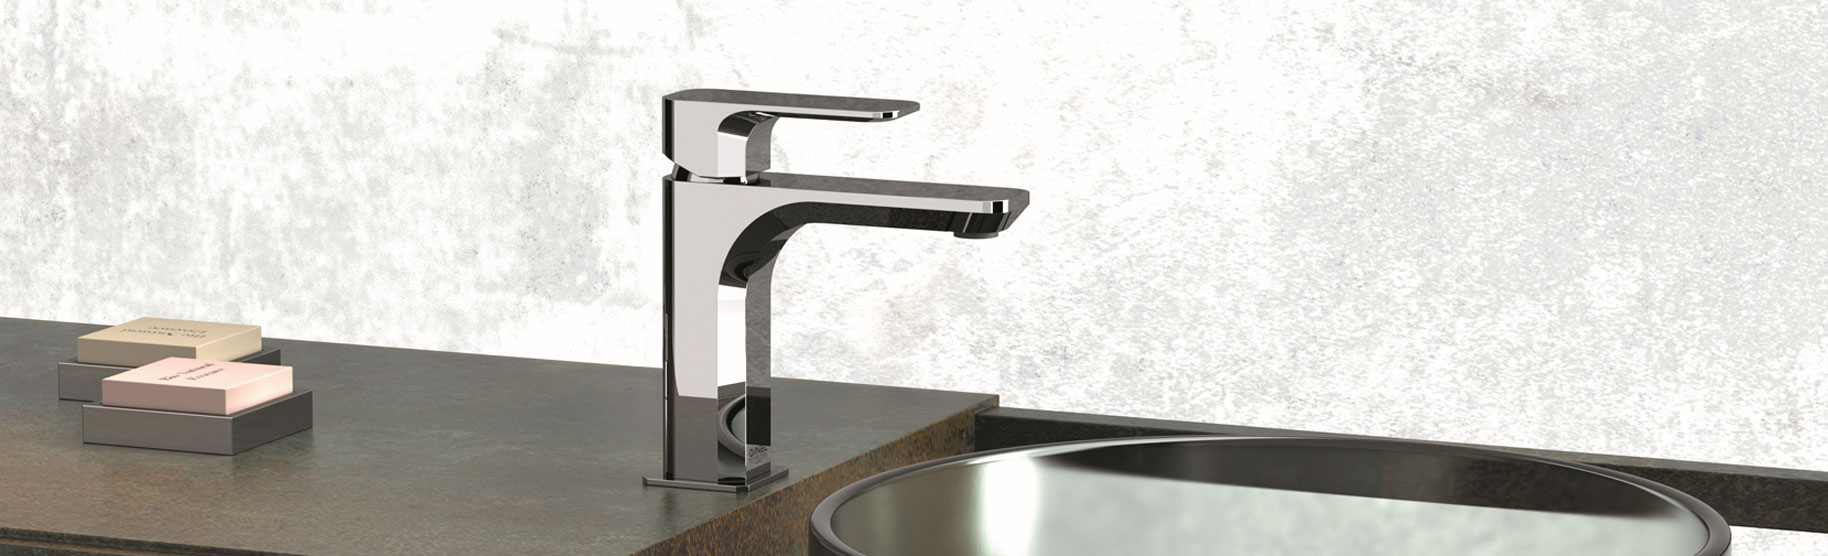 TIARA single-lever faucet collection